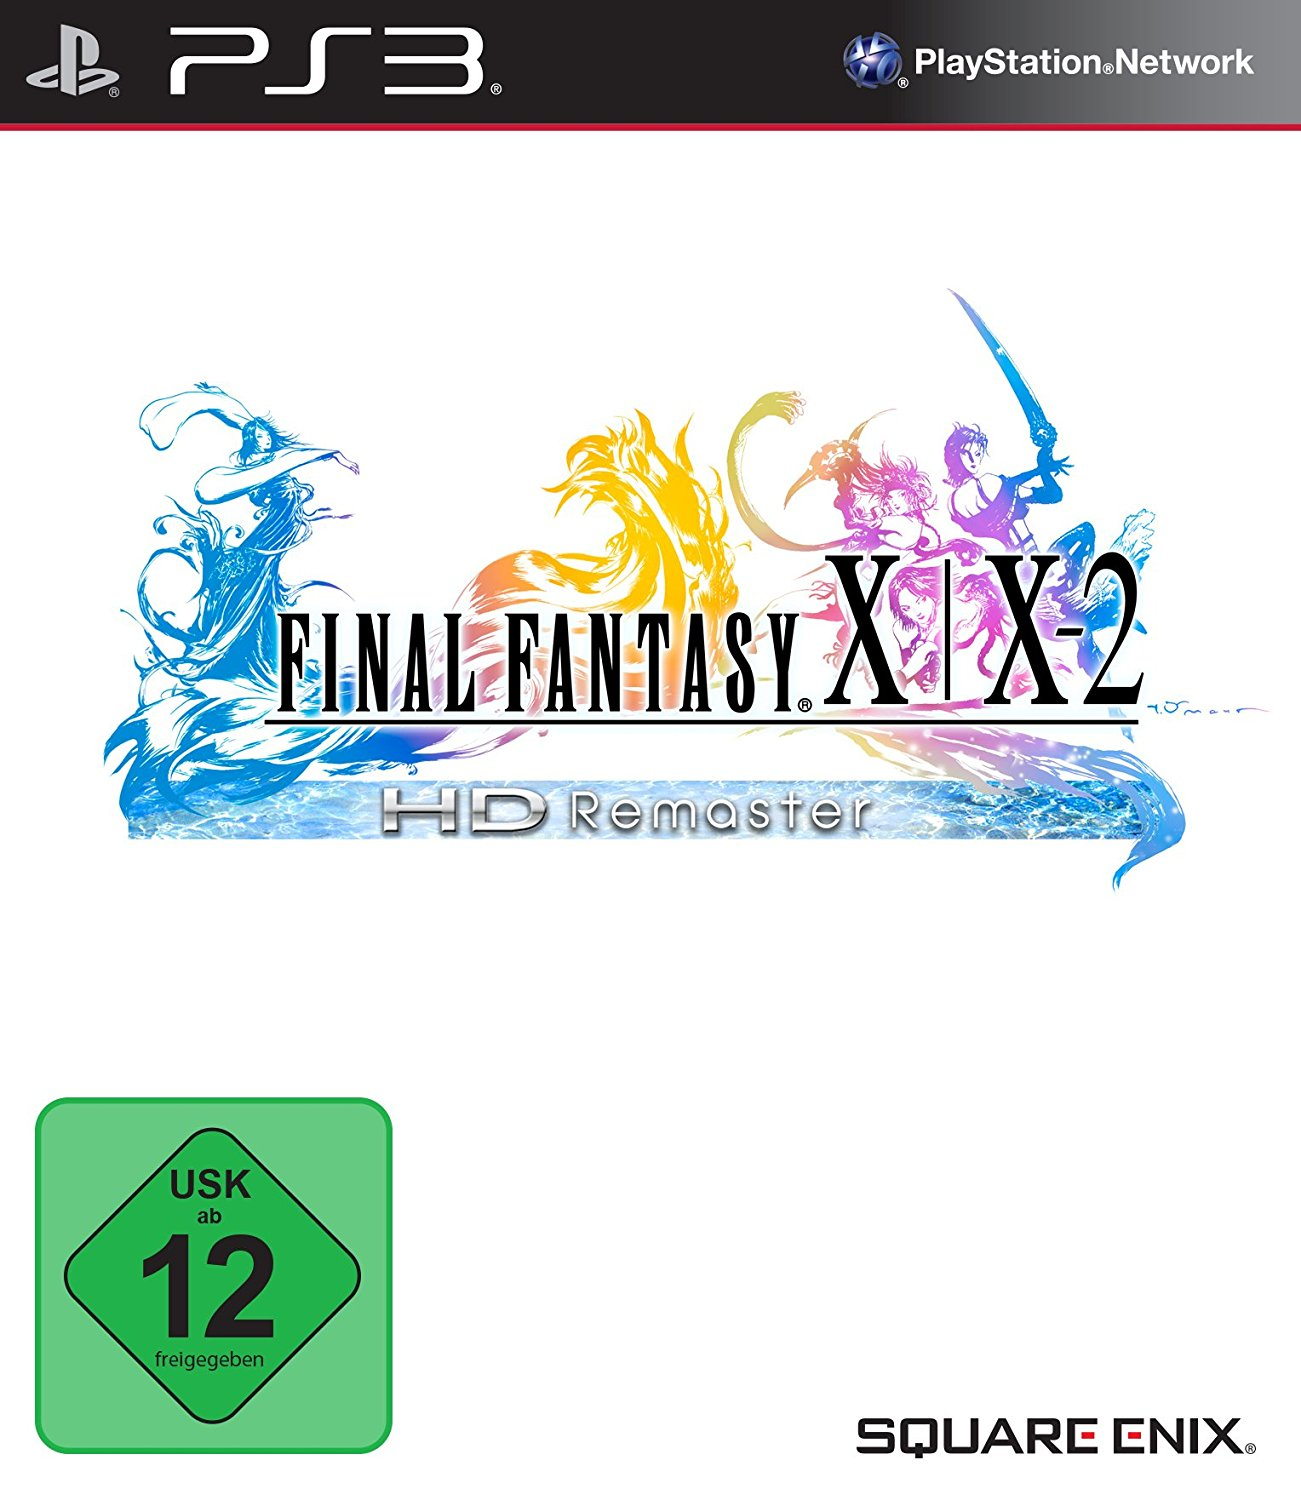 Final Fantasy X / X-2 - HD Remaster PS3